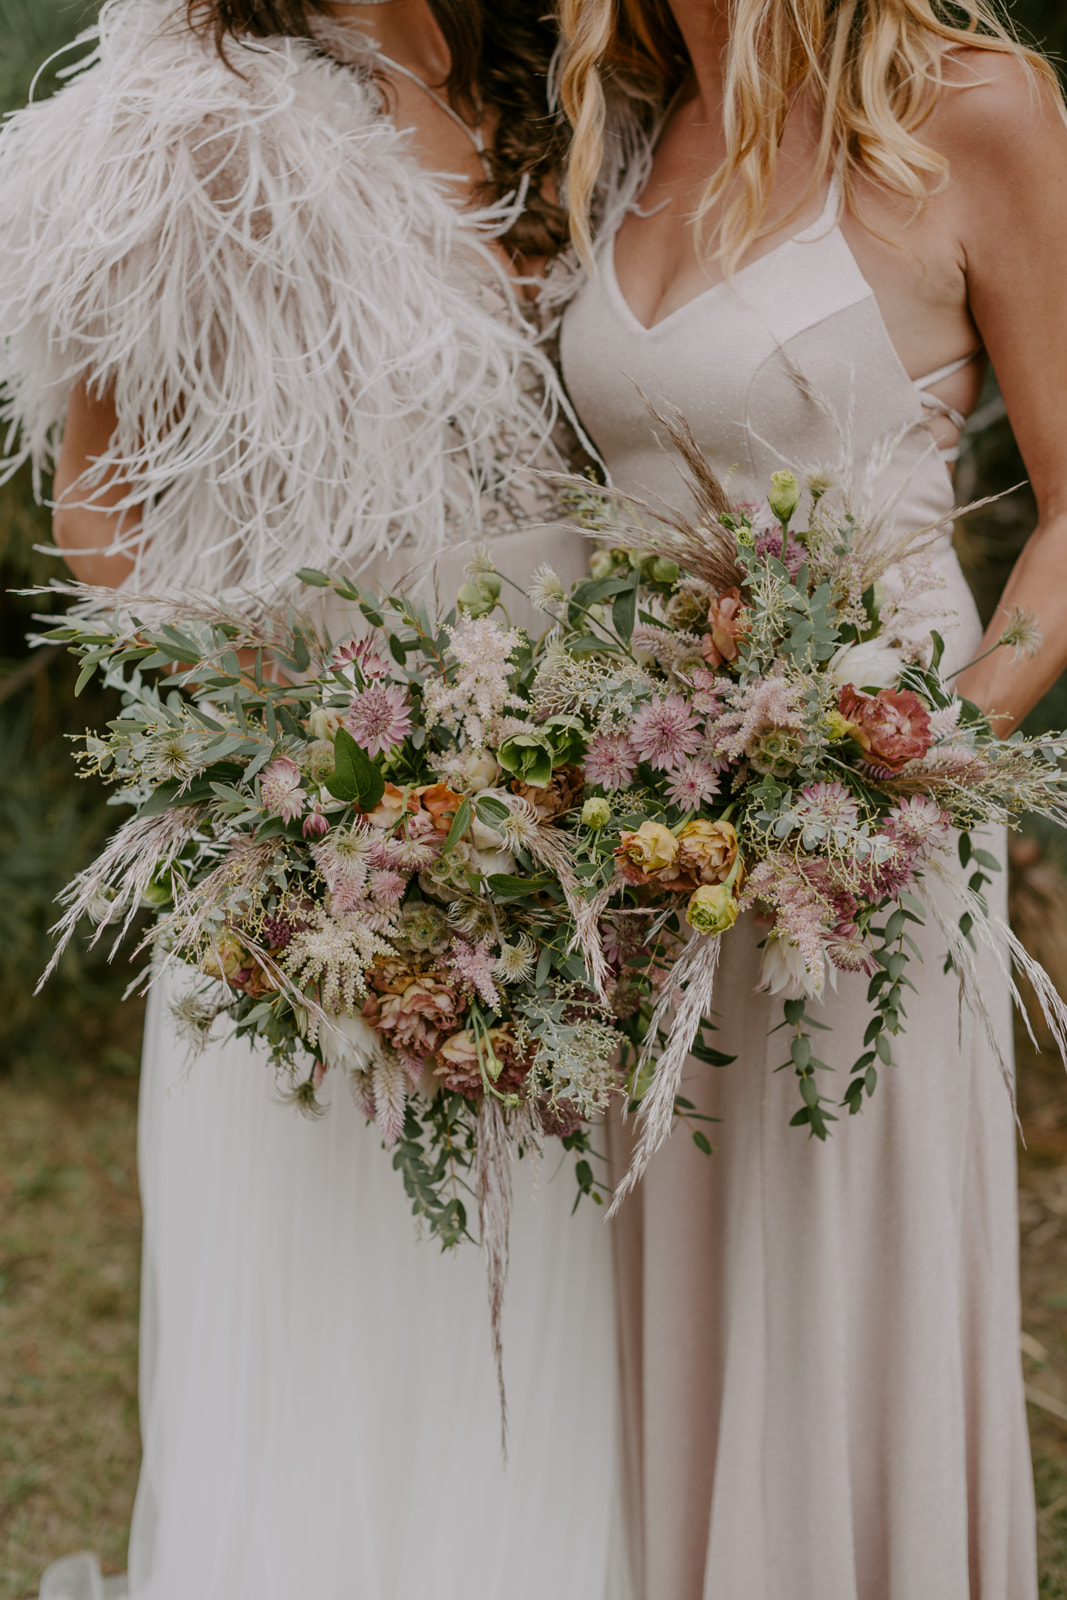 Earthy textural flower bouquets with Astrantia, Hellebore, Astilbe, Pink Pampas Grass, Eucalyptus, Blushing Bride, and Lisianthus by Venn Floral photographed by Kristen Marie Parker.